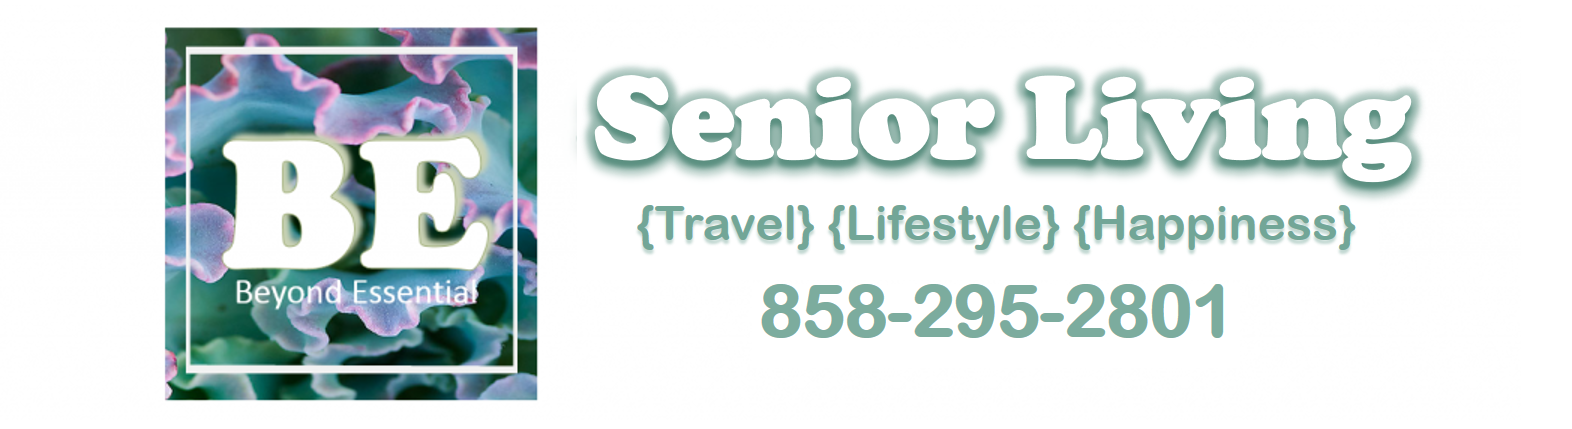 Beyond Essential Senior Living